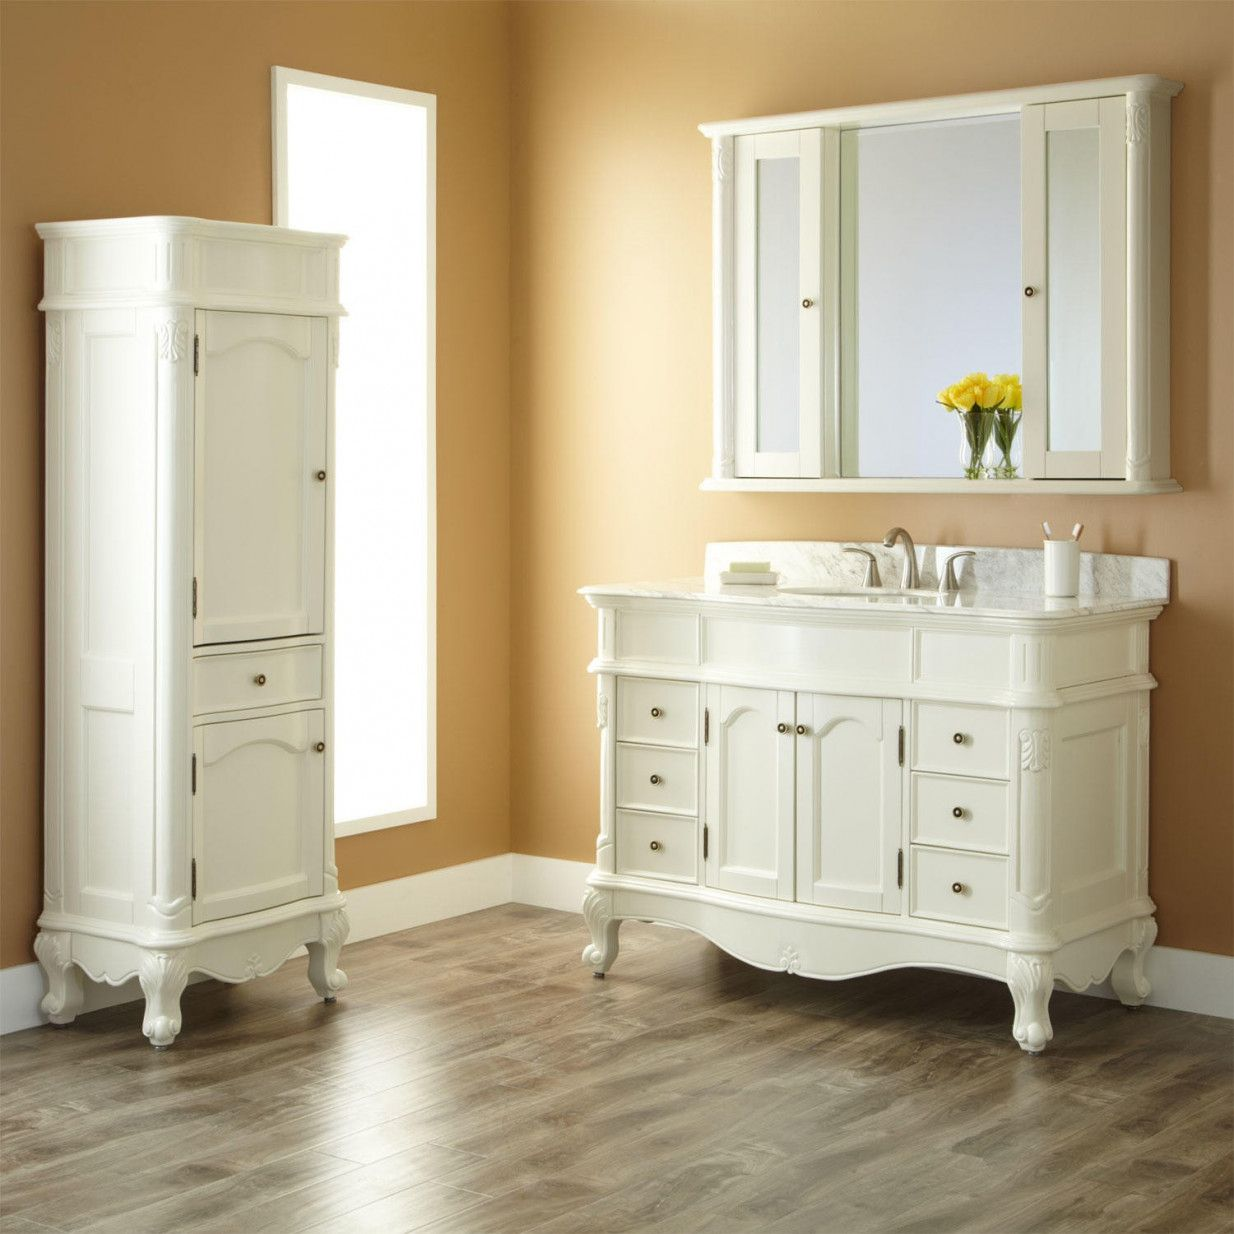 77 Bathroom Vanity And Linen Cabinet Sets Neutral Interior Paint Colors Check More At